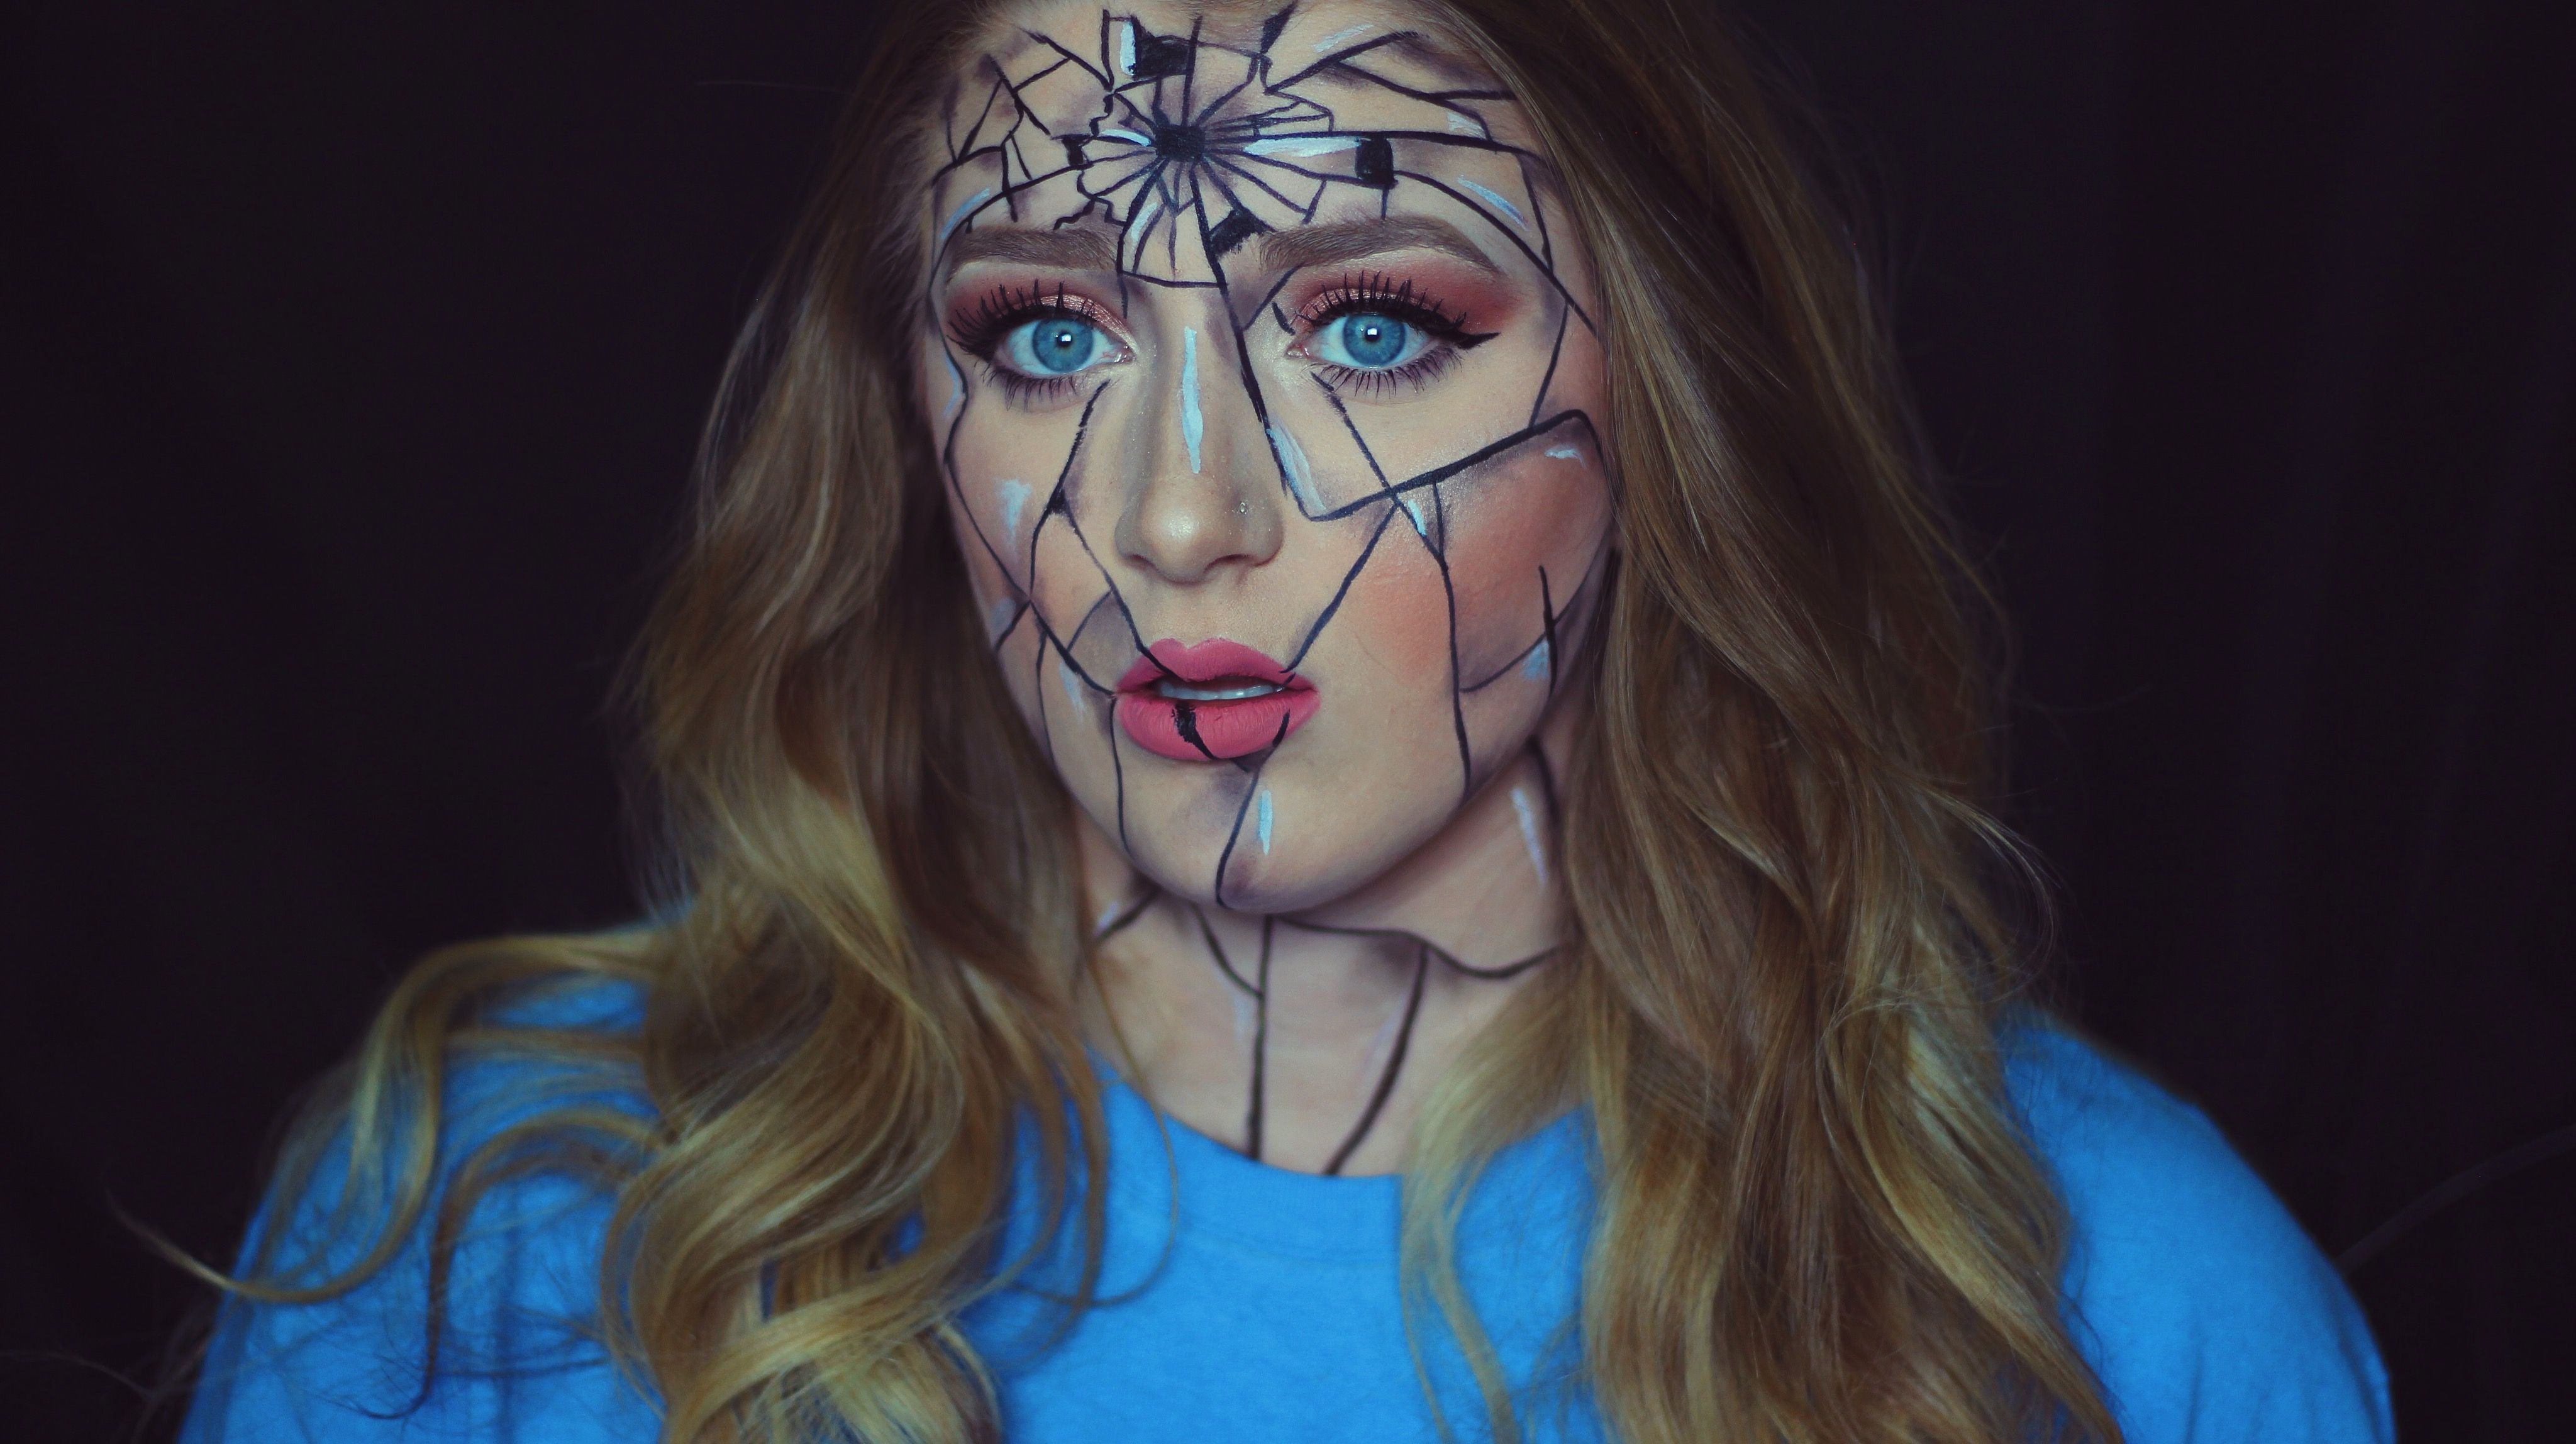 shattered face